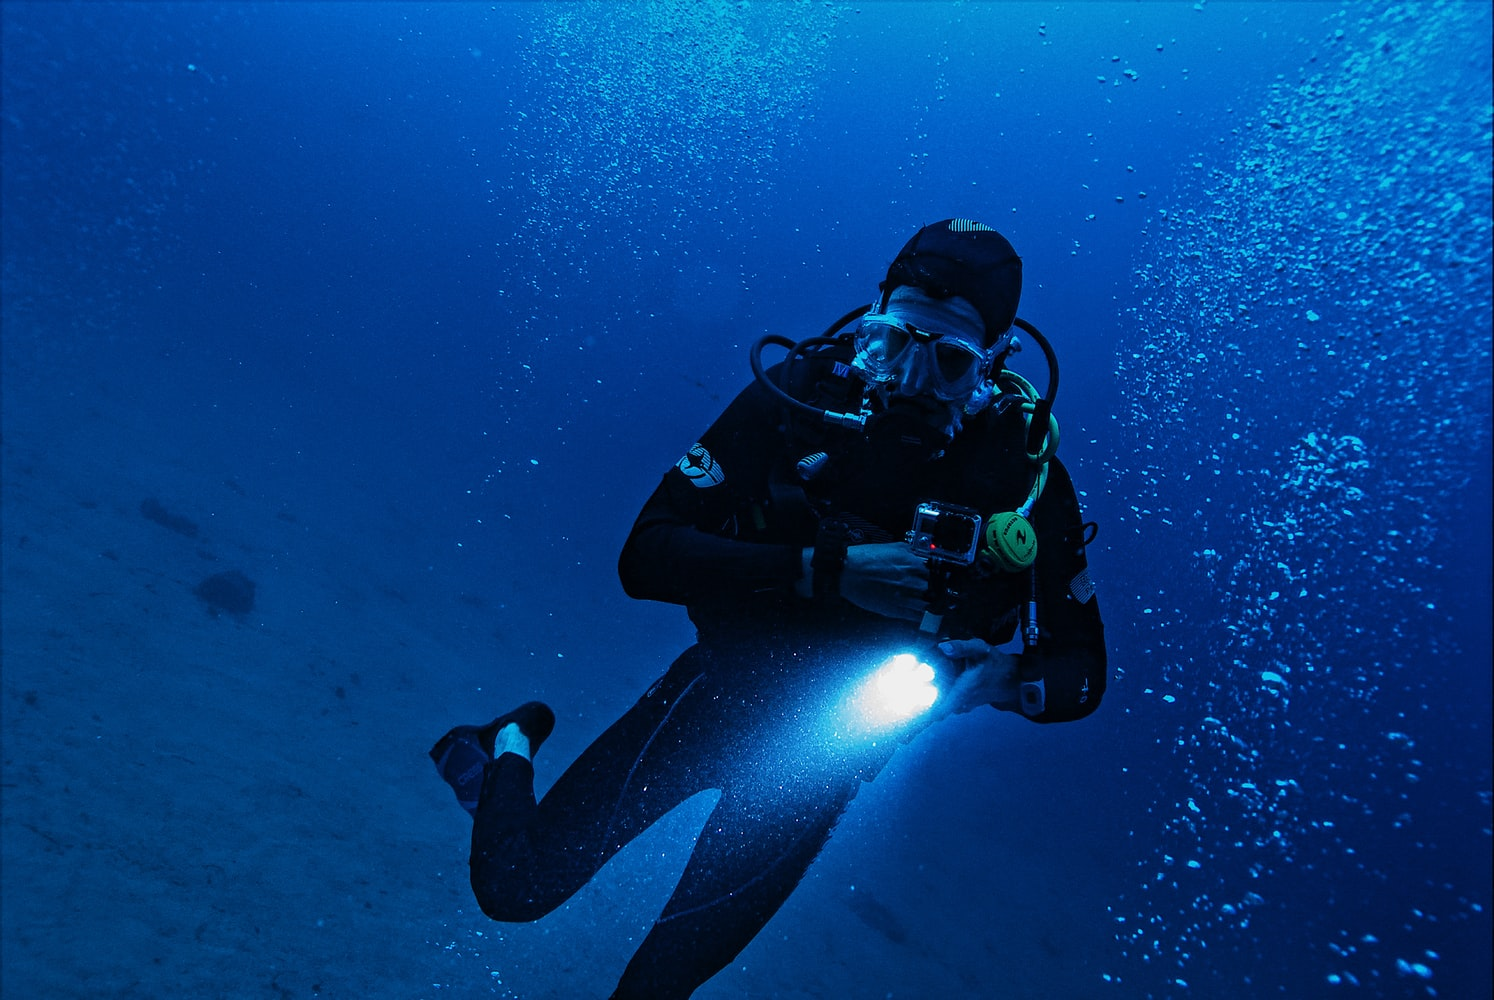 Diver holding a flashlight while swimming underwater